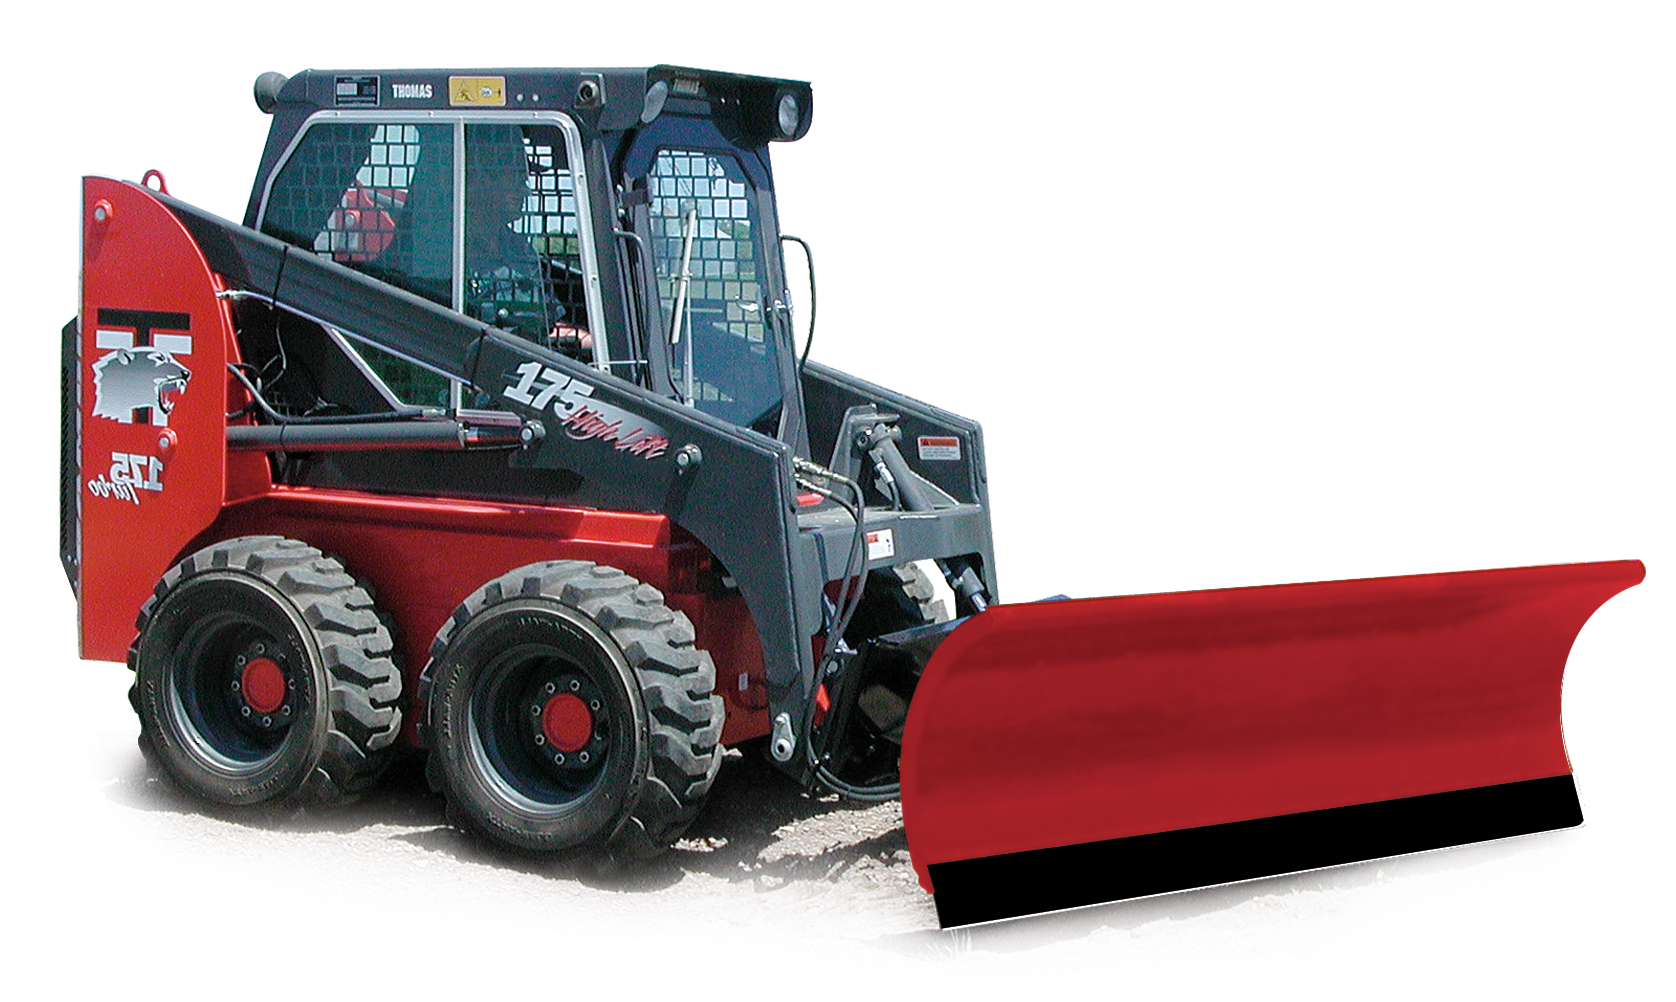 New Hiniker 8.5 Straight Conventional Steel Snowplow, Model:2285, Skid Steer